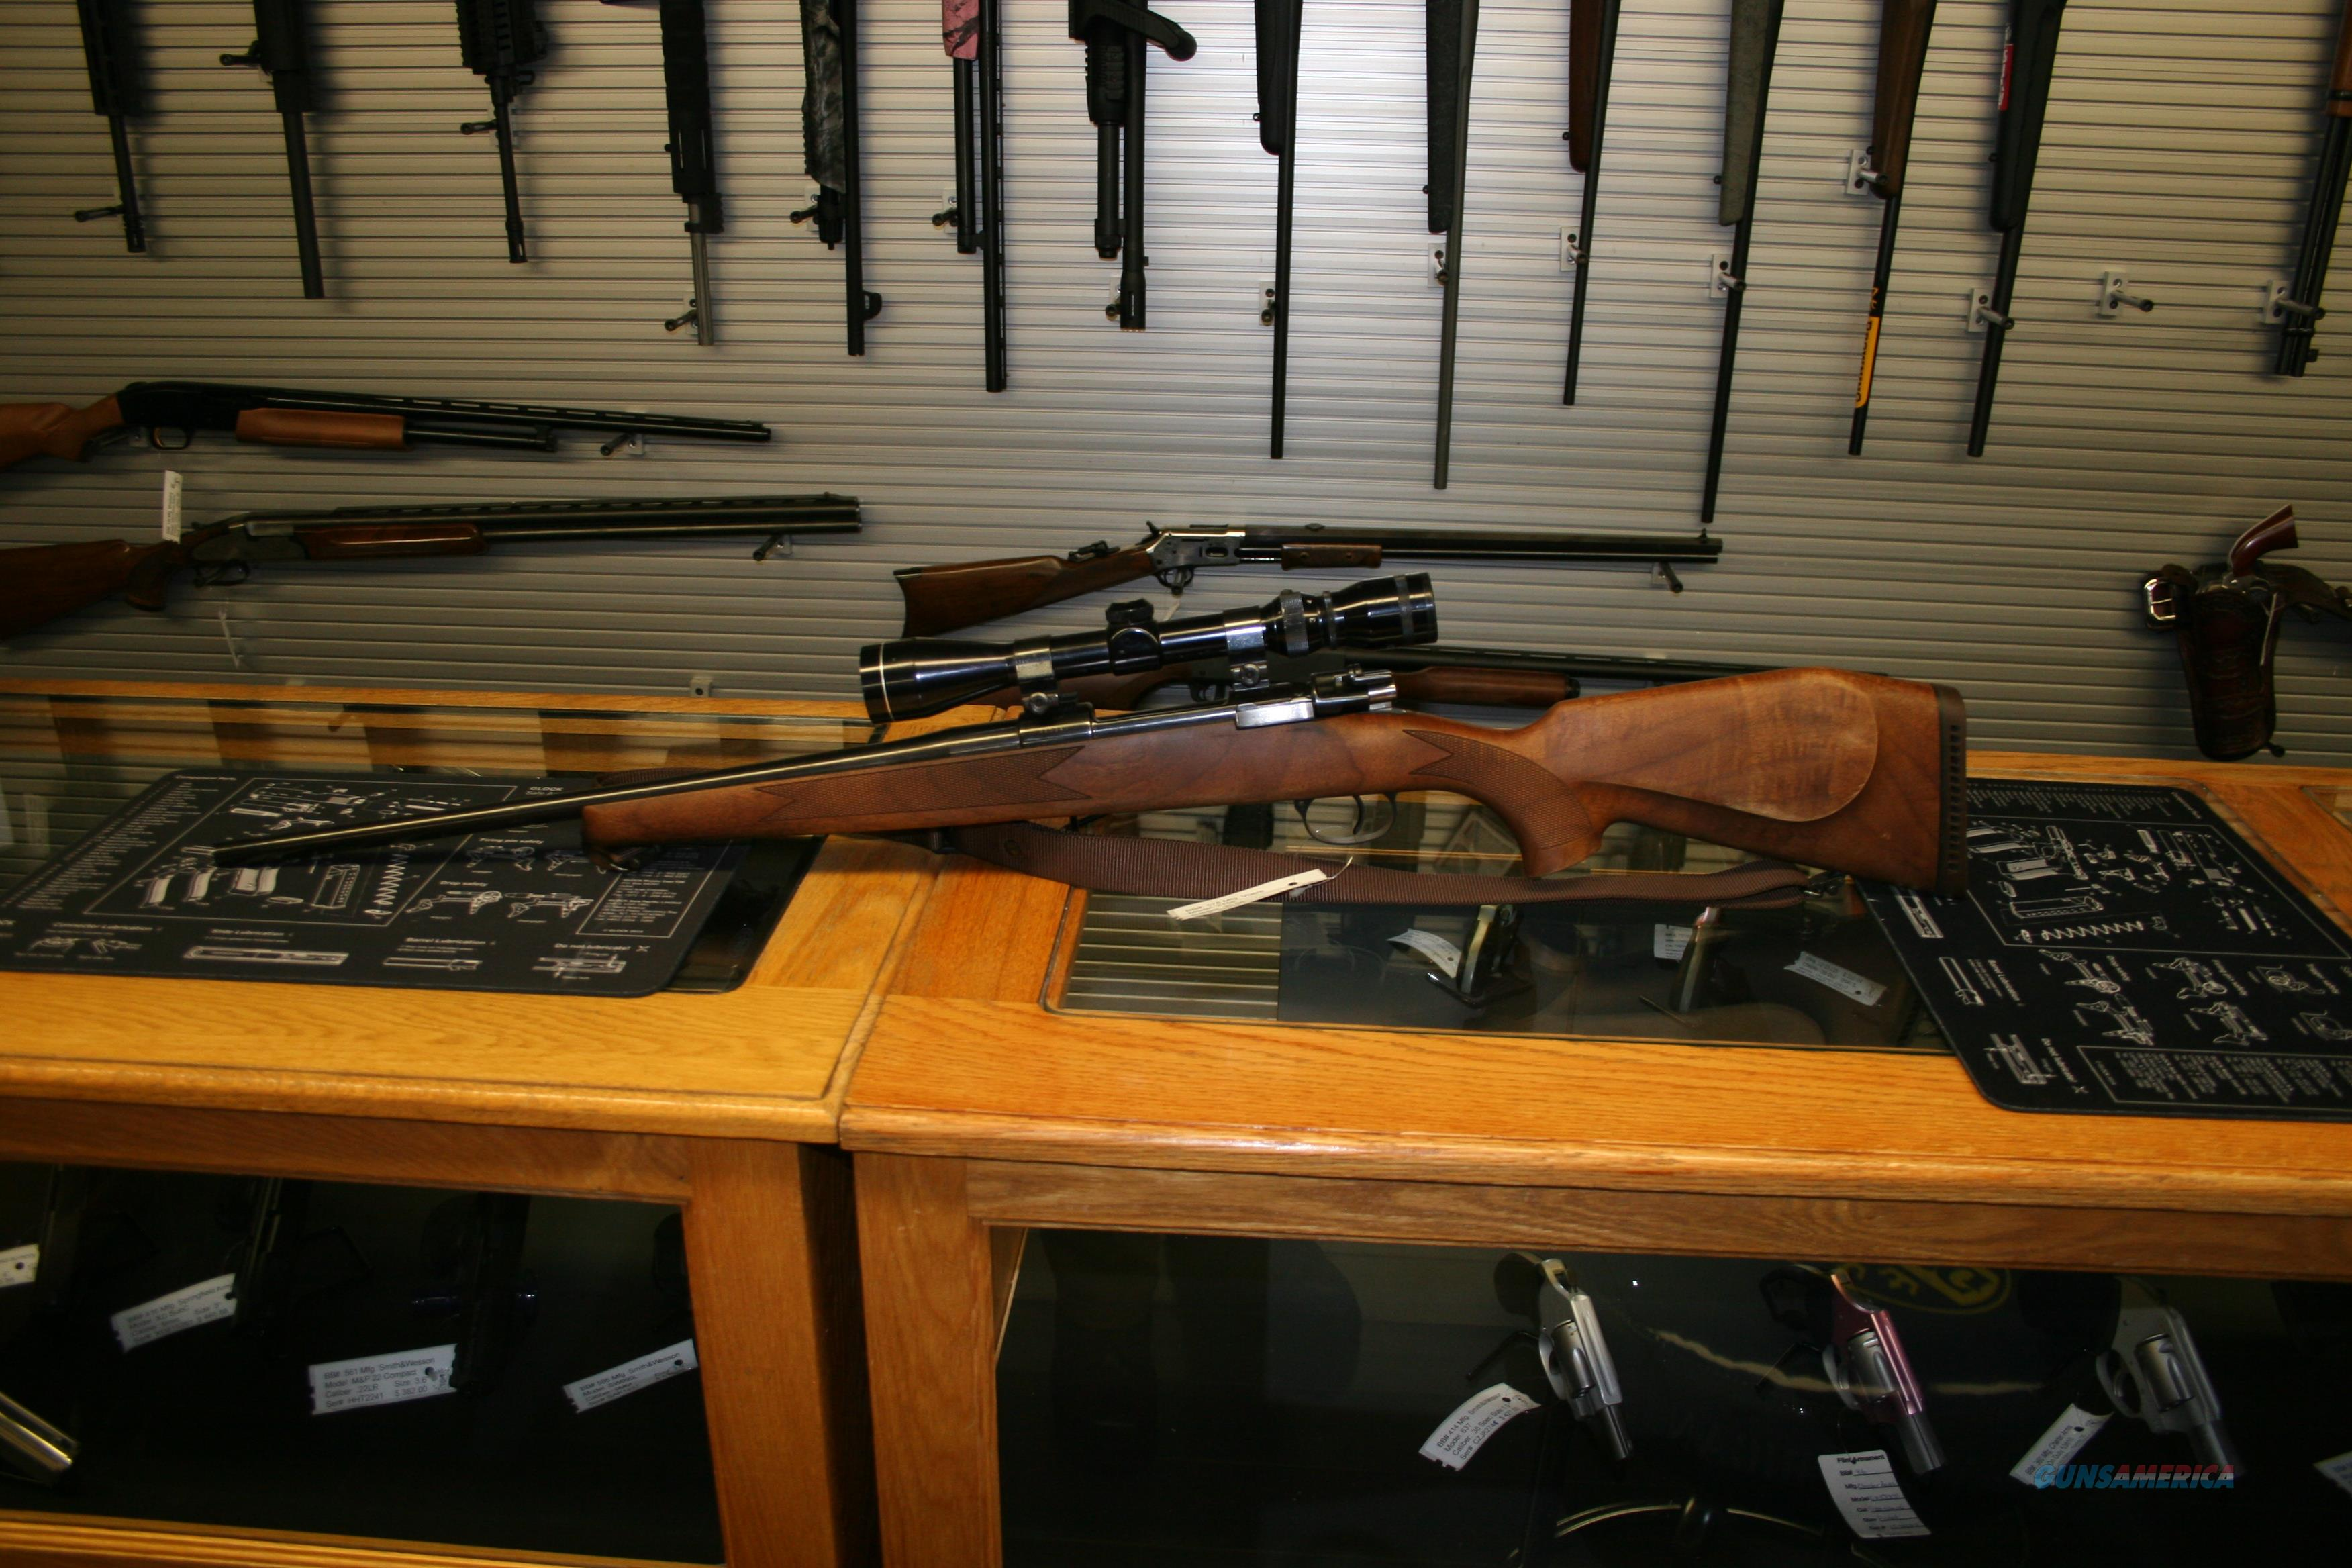 Voere Austria Model 2155 K-9 Mauser Action 30-06 24in Barrel, Wing Safety, Tasco 3x9x40 Scope  Guns > Rifles > Voere Rifles